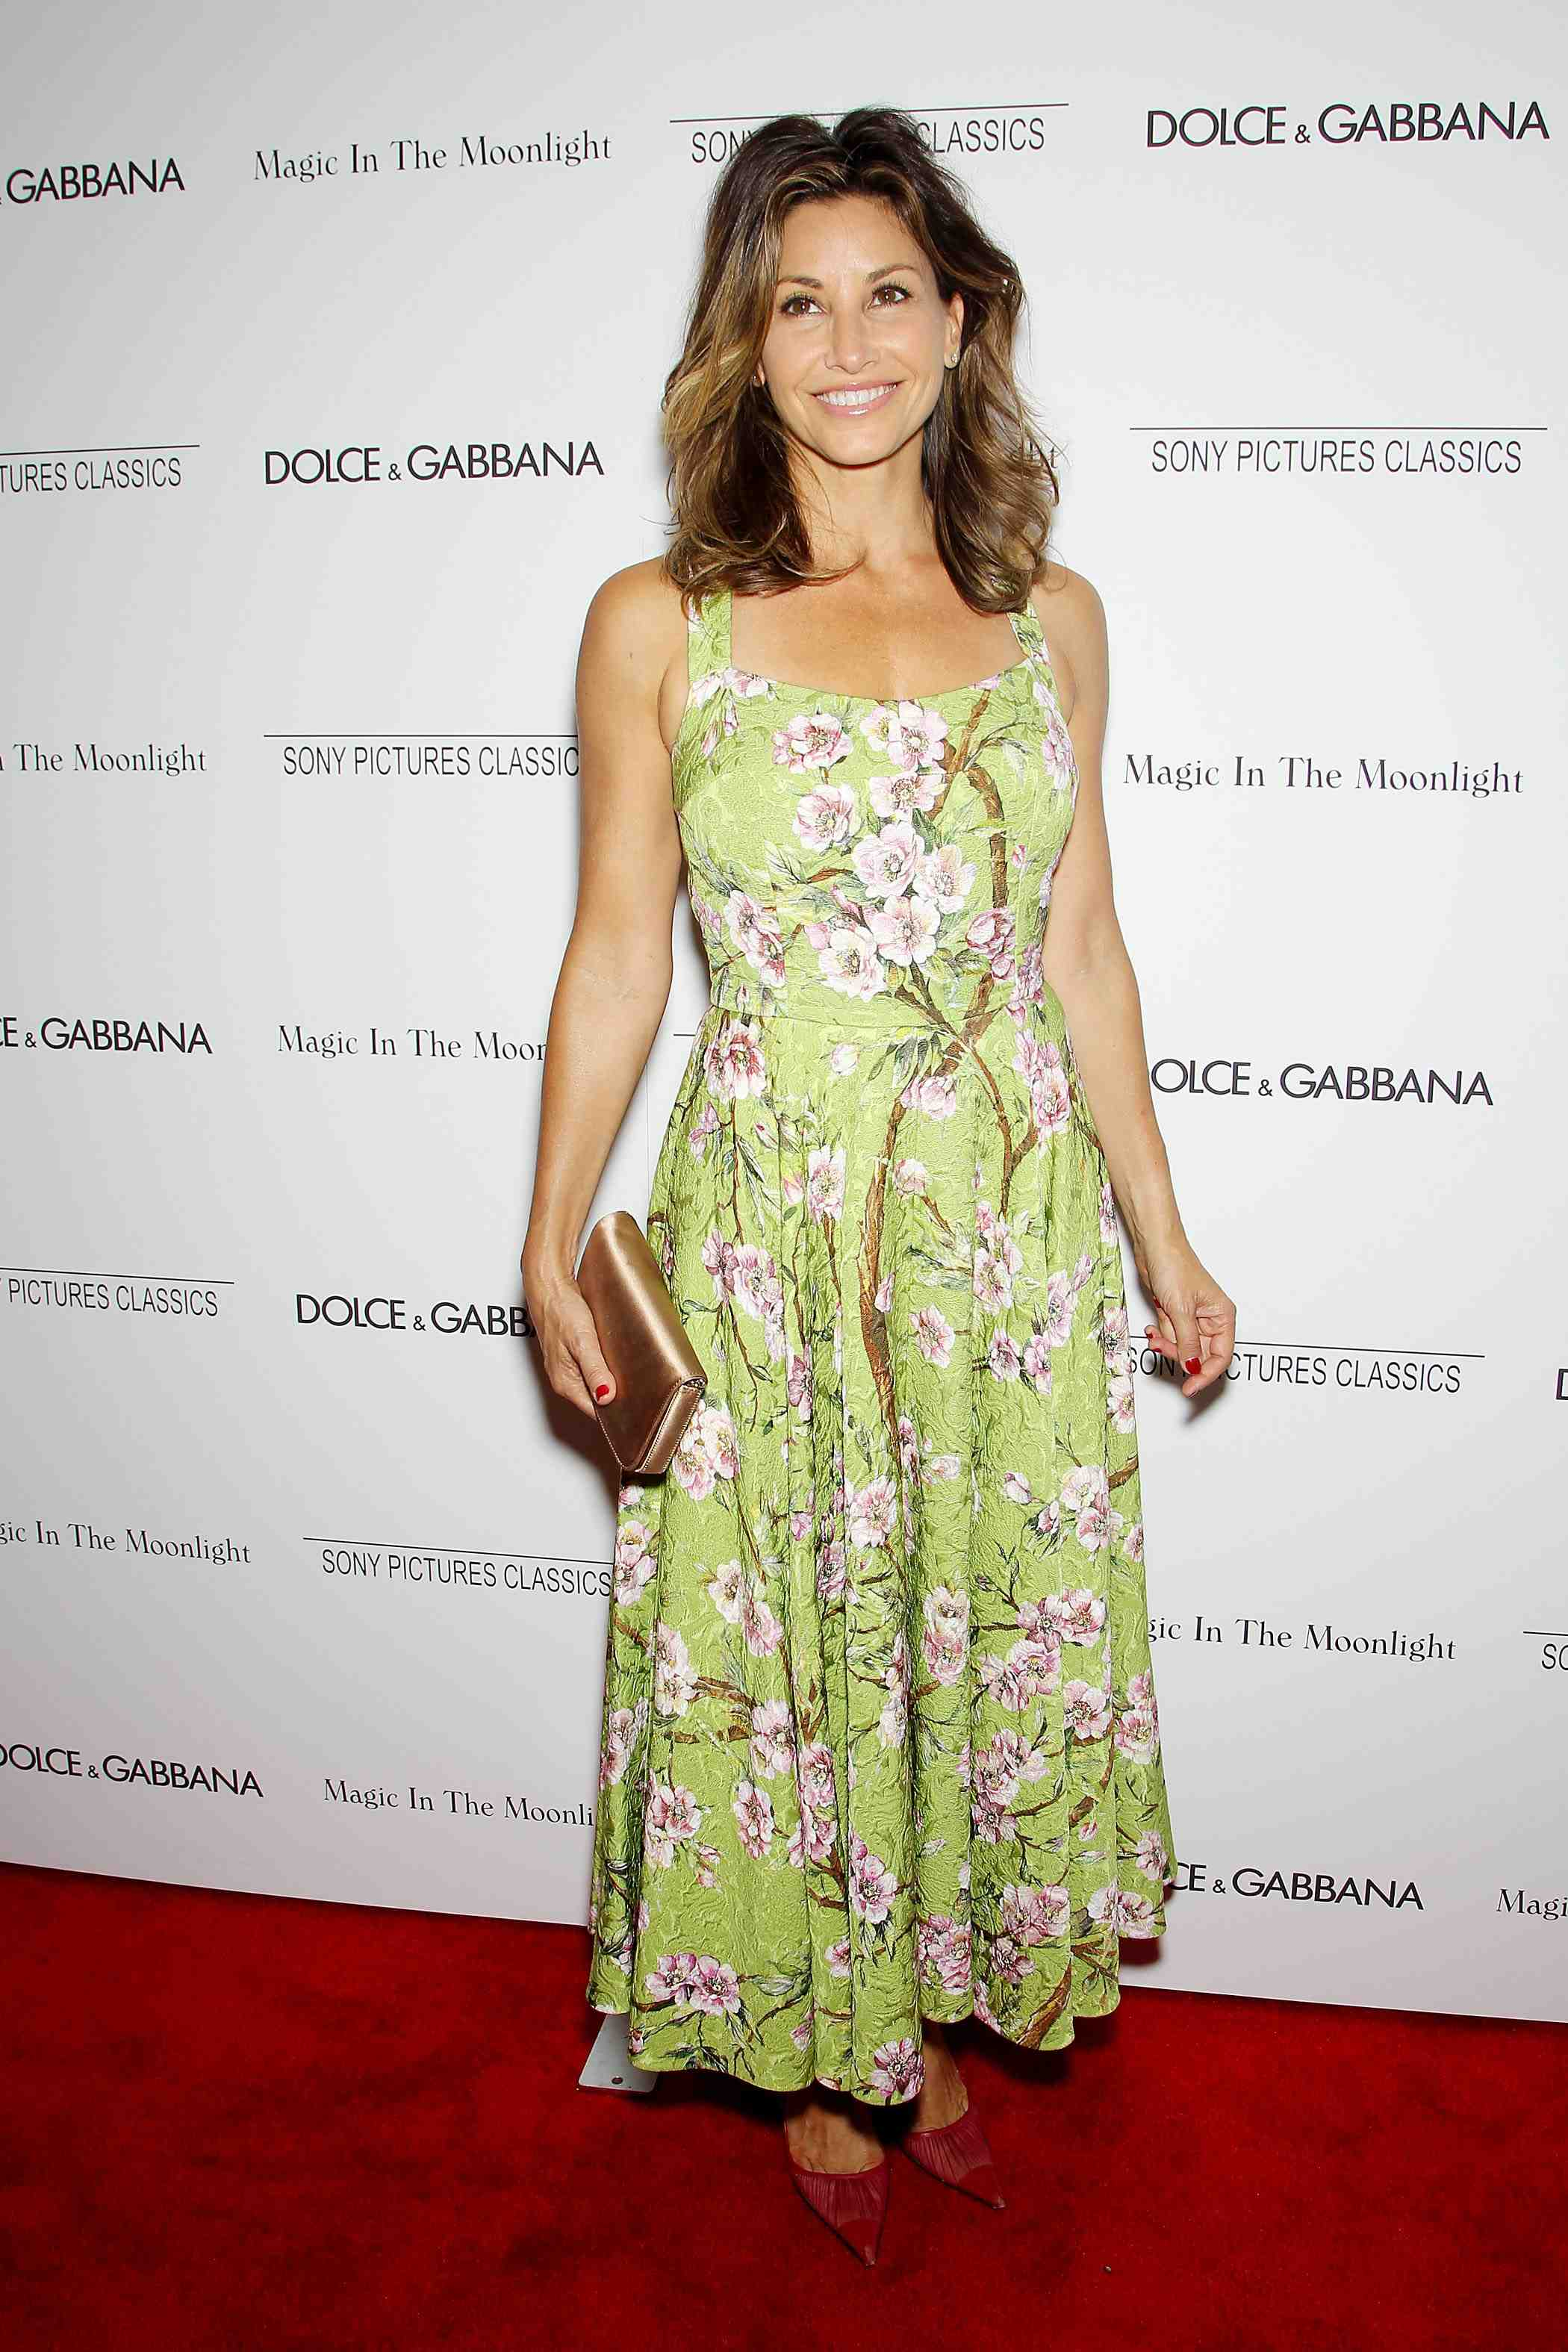 Gina Gershon_'Magic in the Moonlight' NY Premiere_July 17 2014.jpg